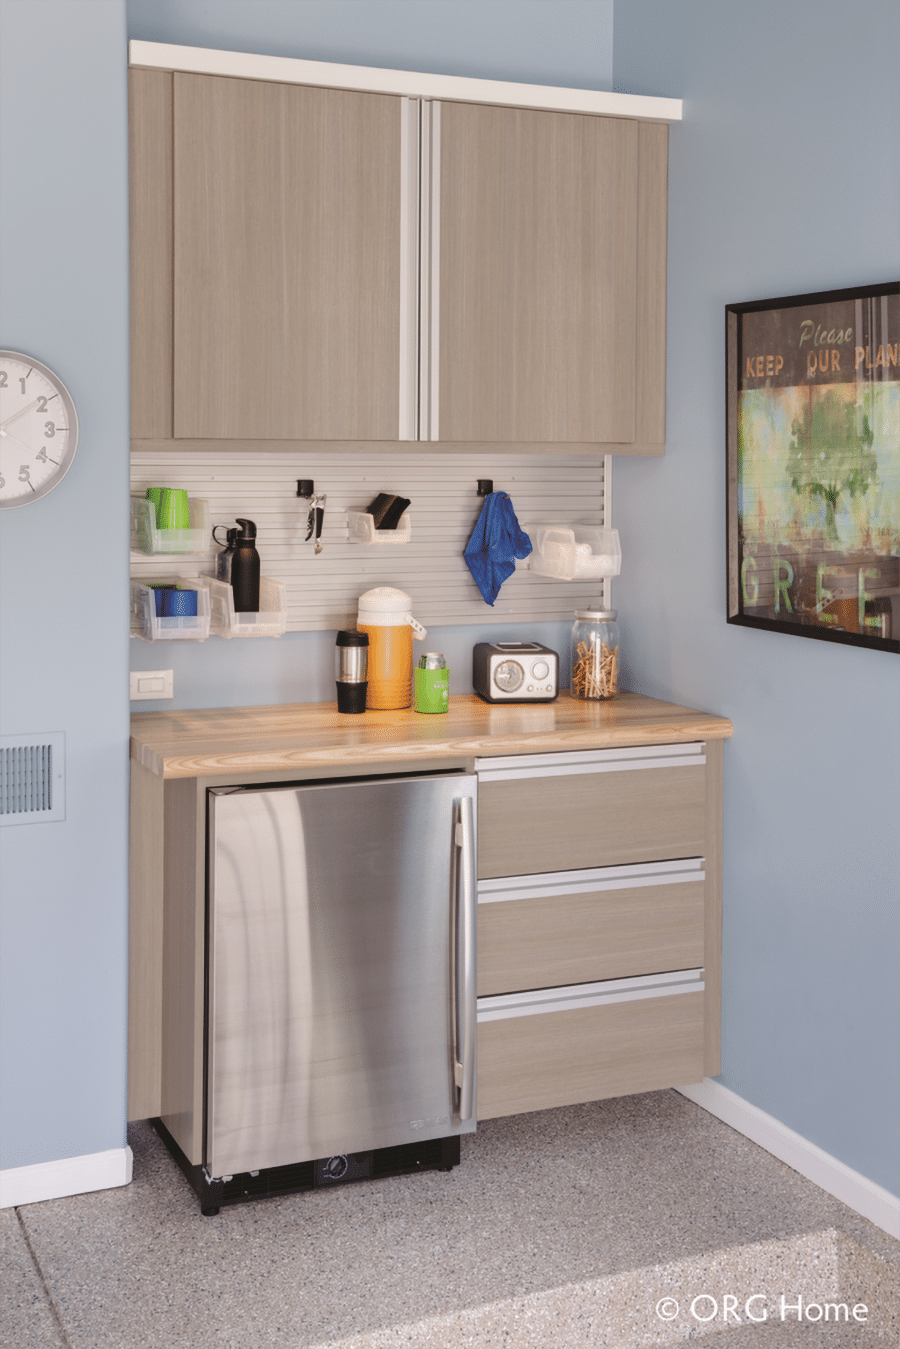 Design flaw 4 work bench in columbus garage with an outlet | Innovate Home Org | #WorkBench #GarageSotrage #ColumbusGarage